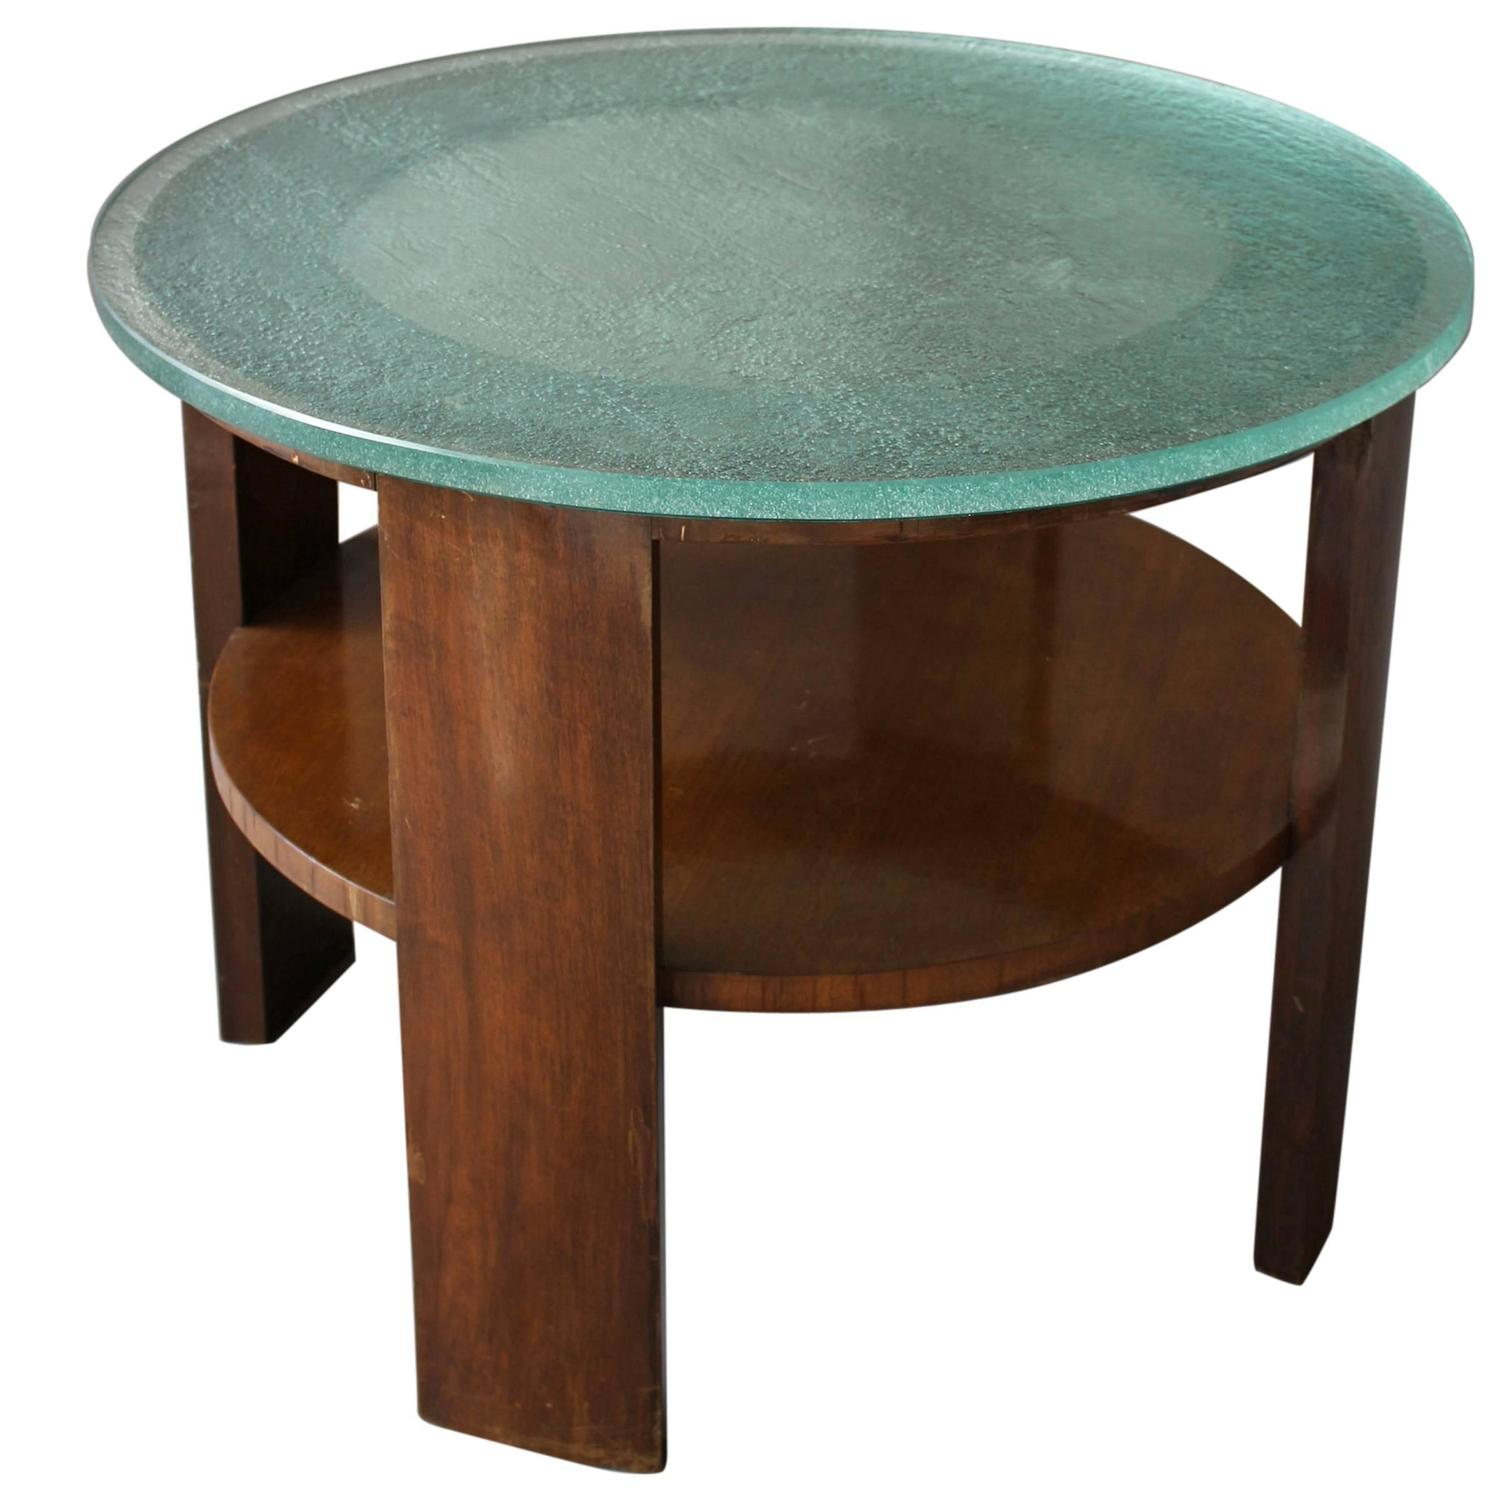 French Wood Slab Coffee Table At 1stdibs: French Art Deco Gueridon With A Slab Glass Top For Sale At